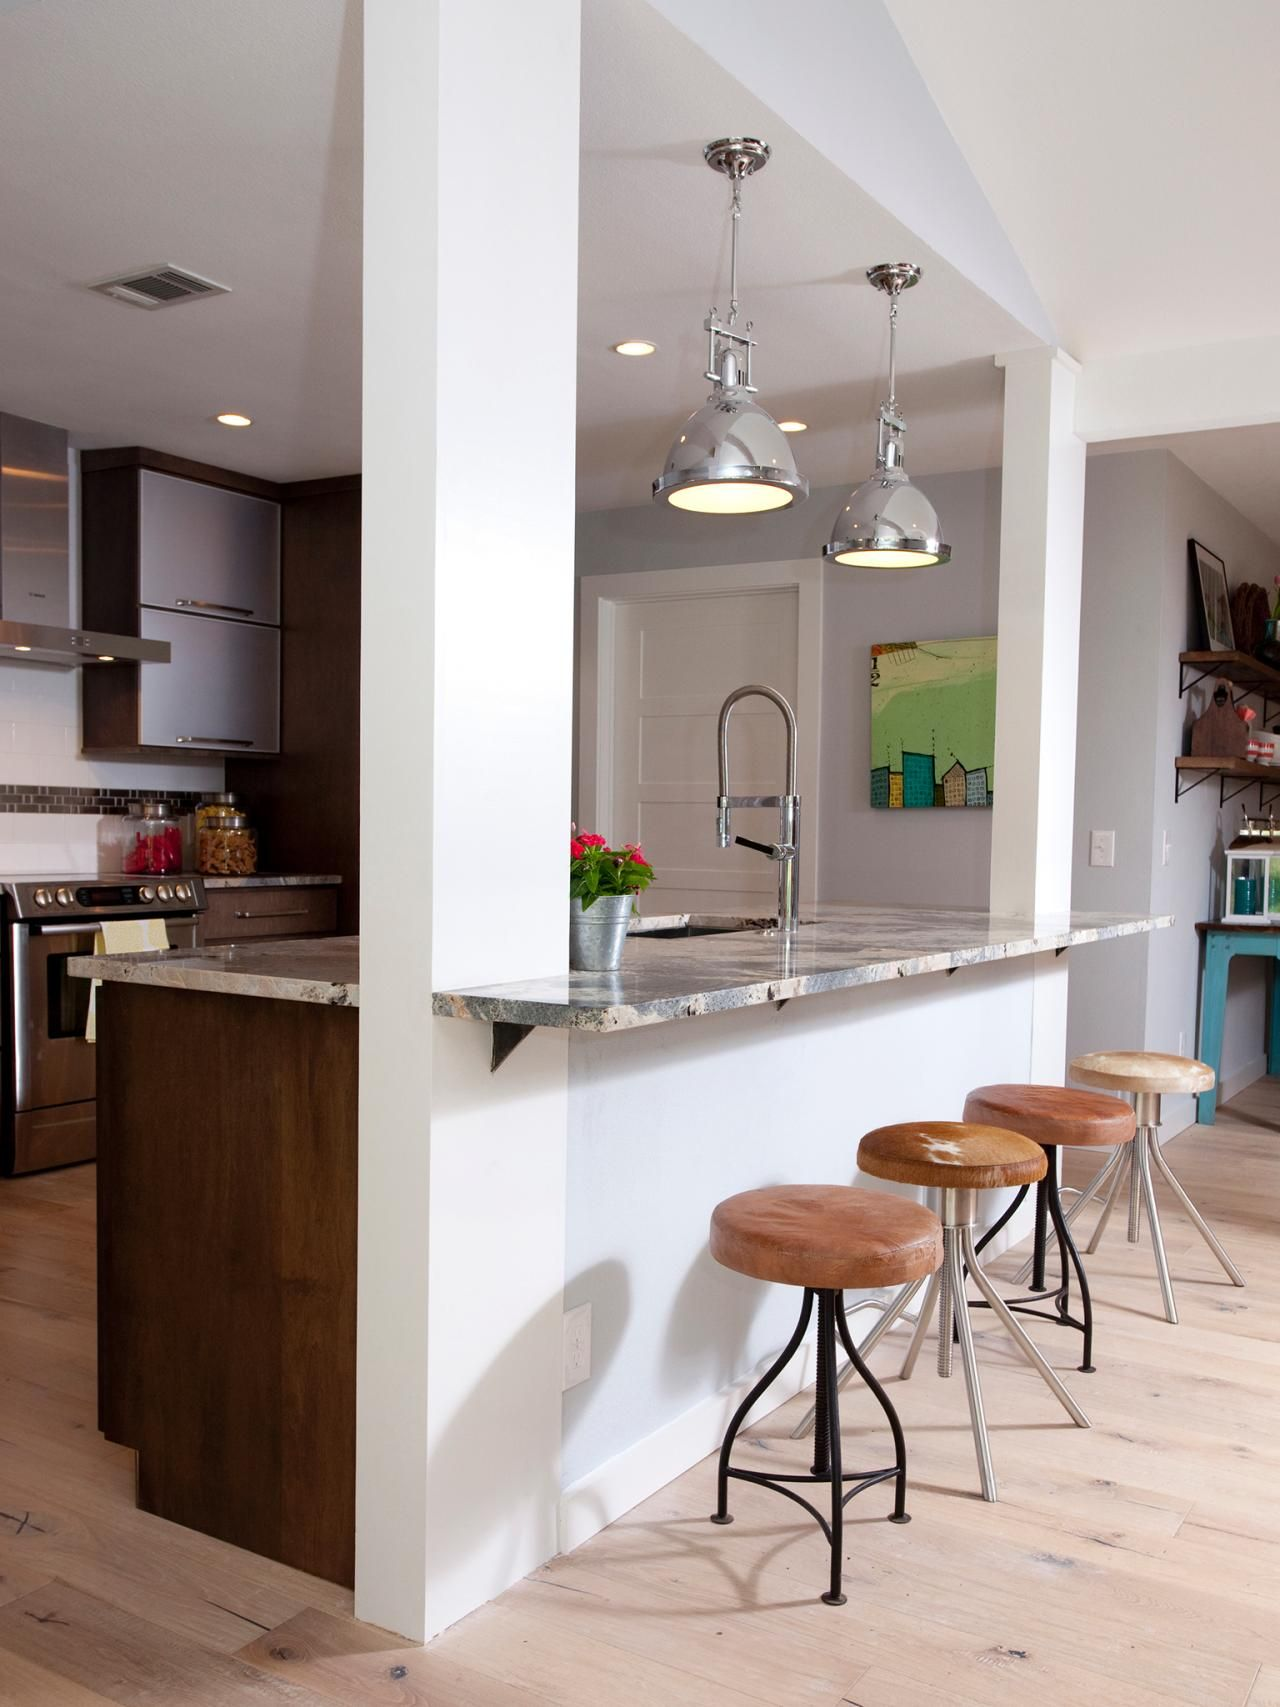 Kitchen ideas medium size framed kitchen with pass through countertop - Kitchen Ideas Medium Size Framed Kitchen With Pass Through Countertop Pantries For Small Kitchens Pictures Download